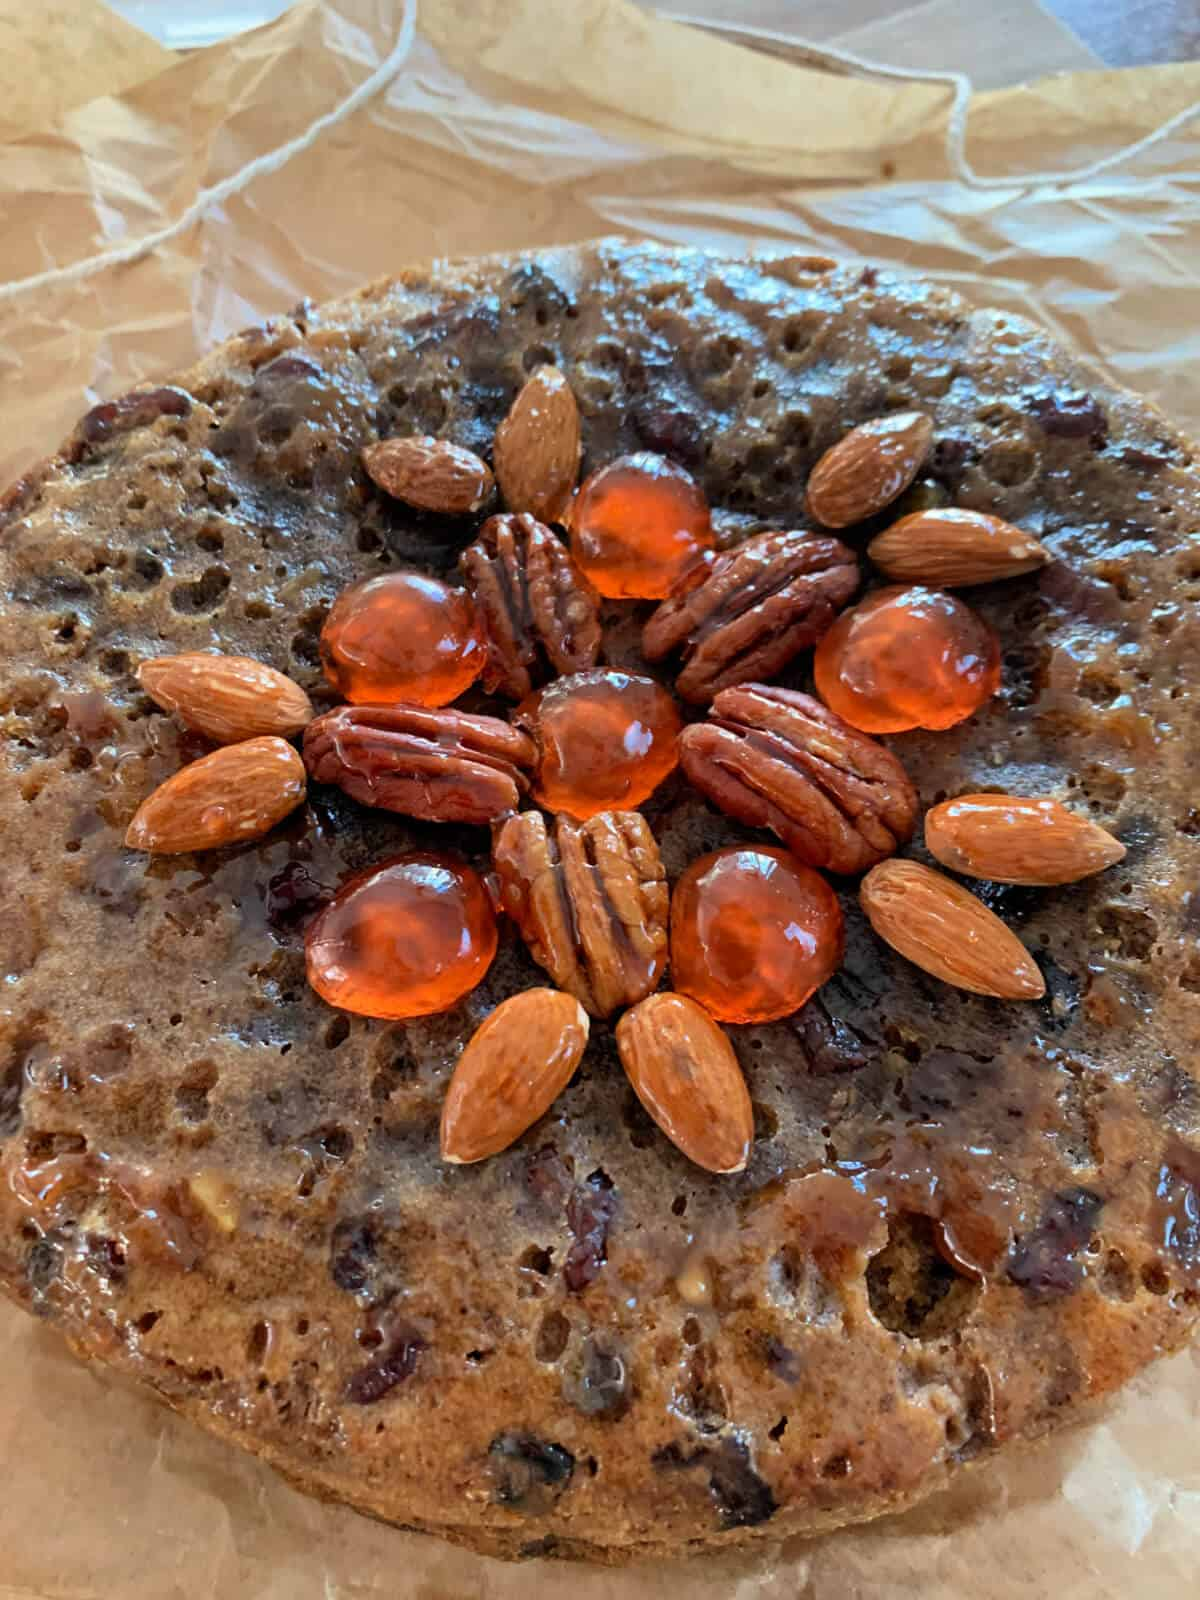 Close up of top of fruit cake decorated with nuts and cherries.